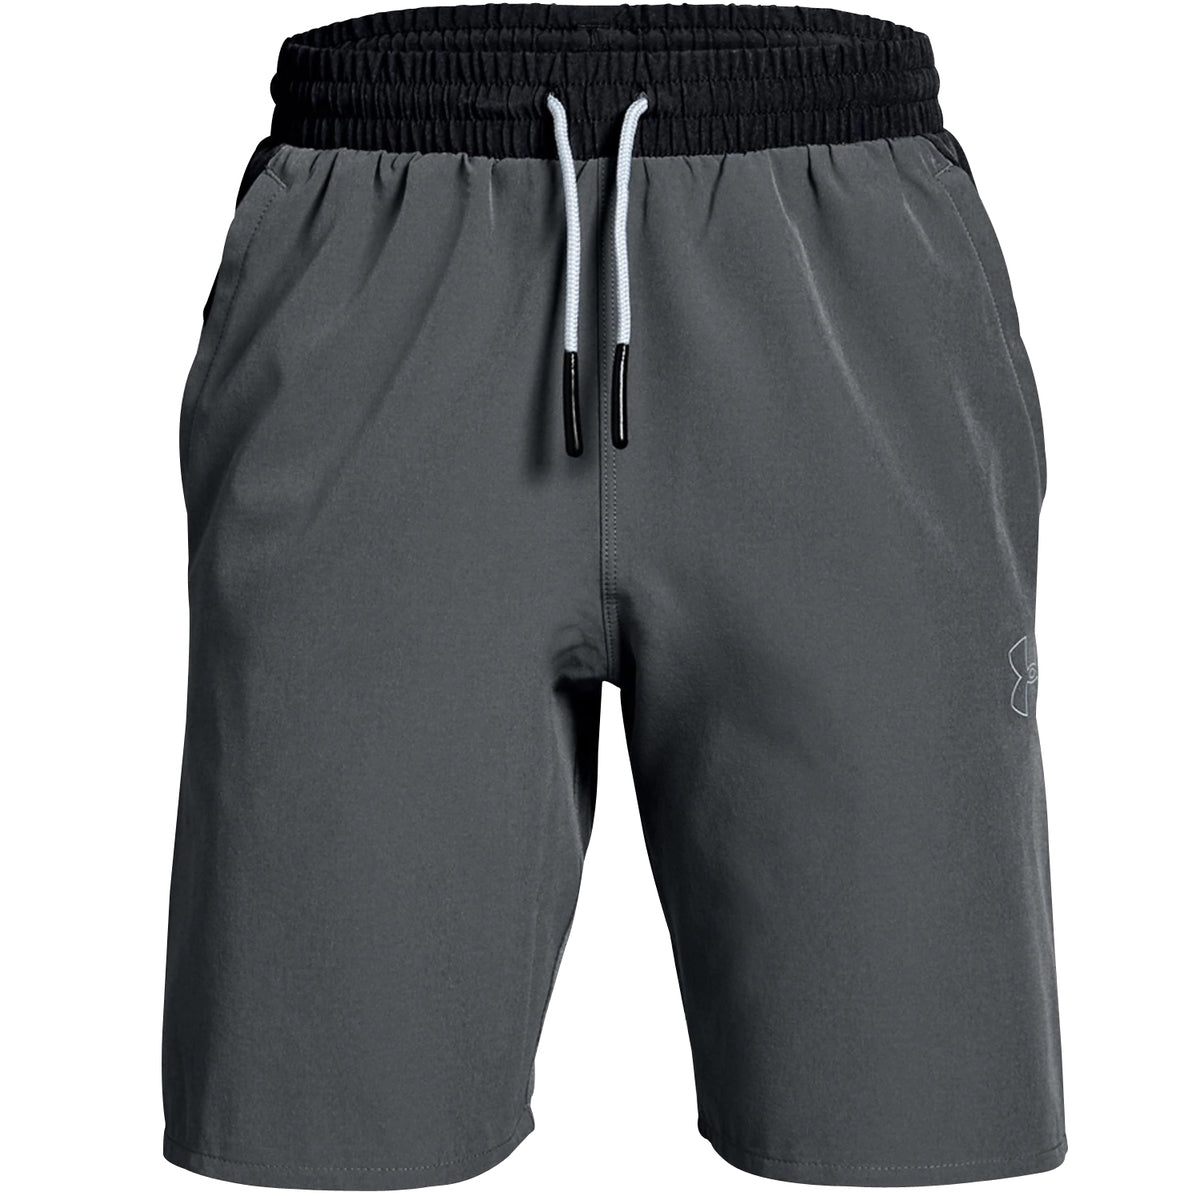 bcfd1a986 ... Boys Splash Short · Under Armour Splash Shorts